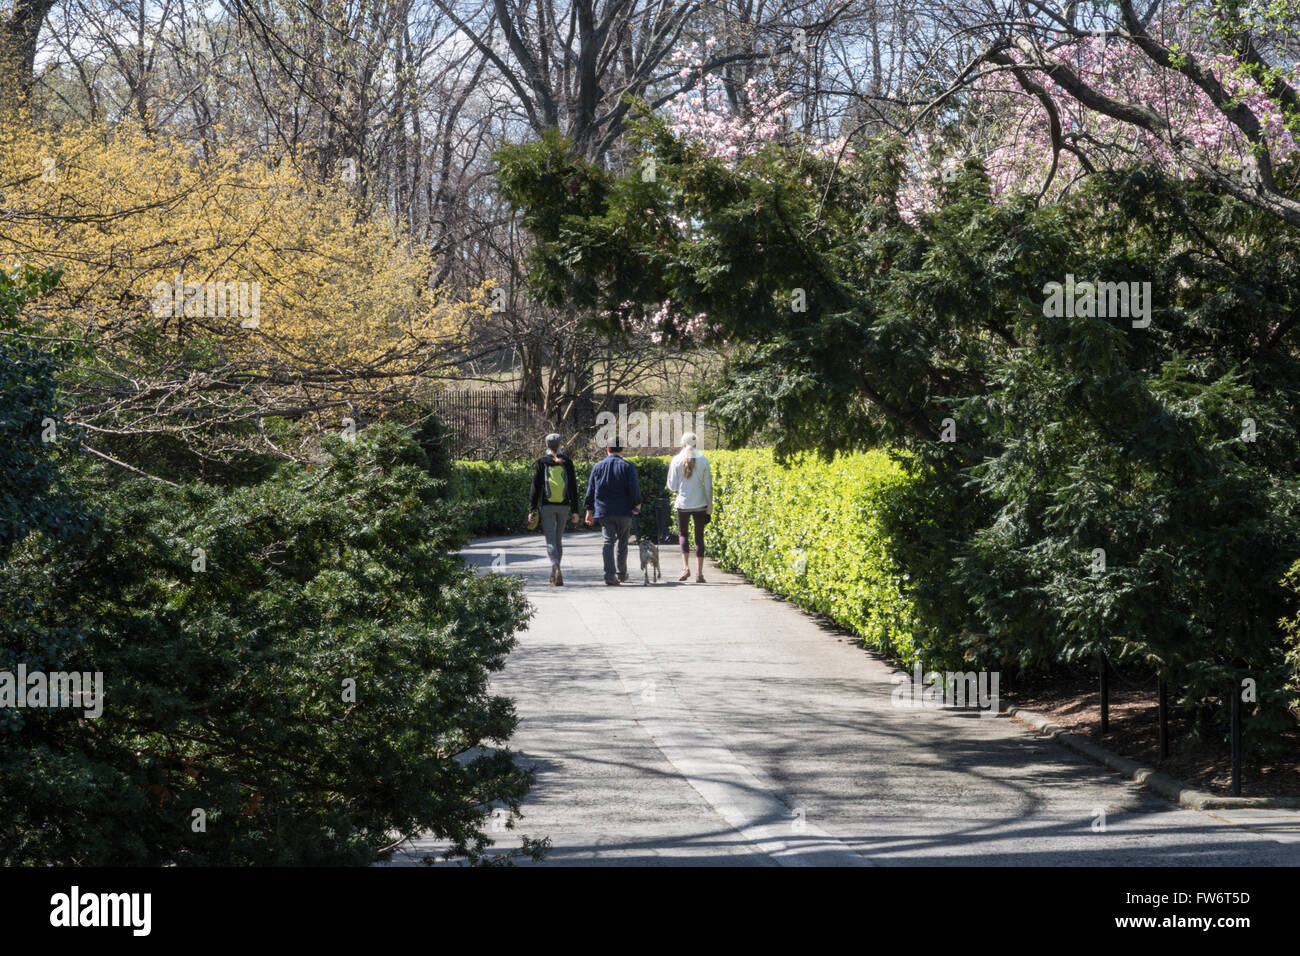 Tourists Enjoying The Conservatory Garden, Central Park, NYC - Stock Image